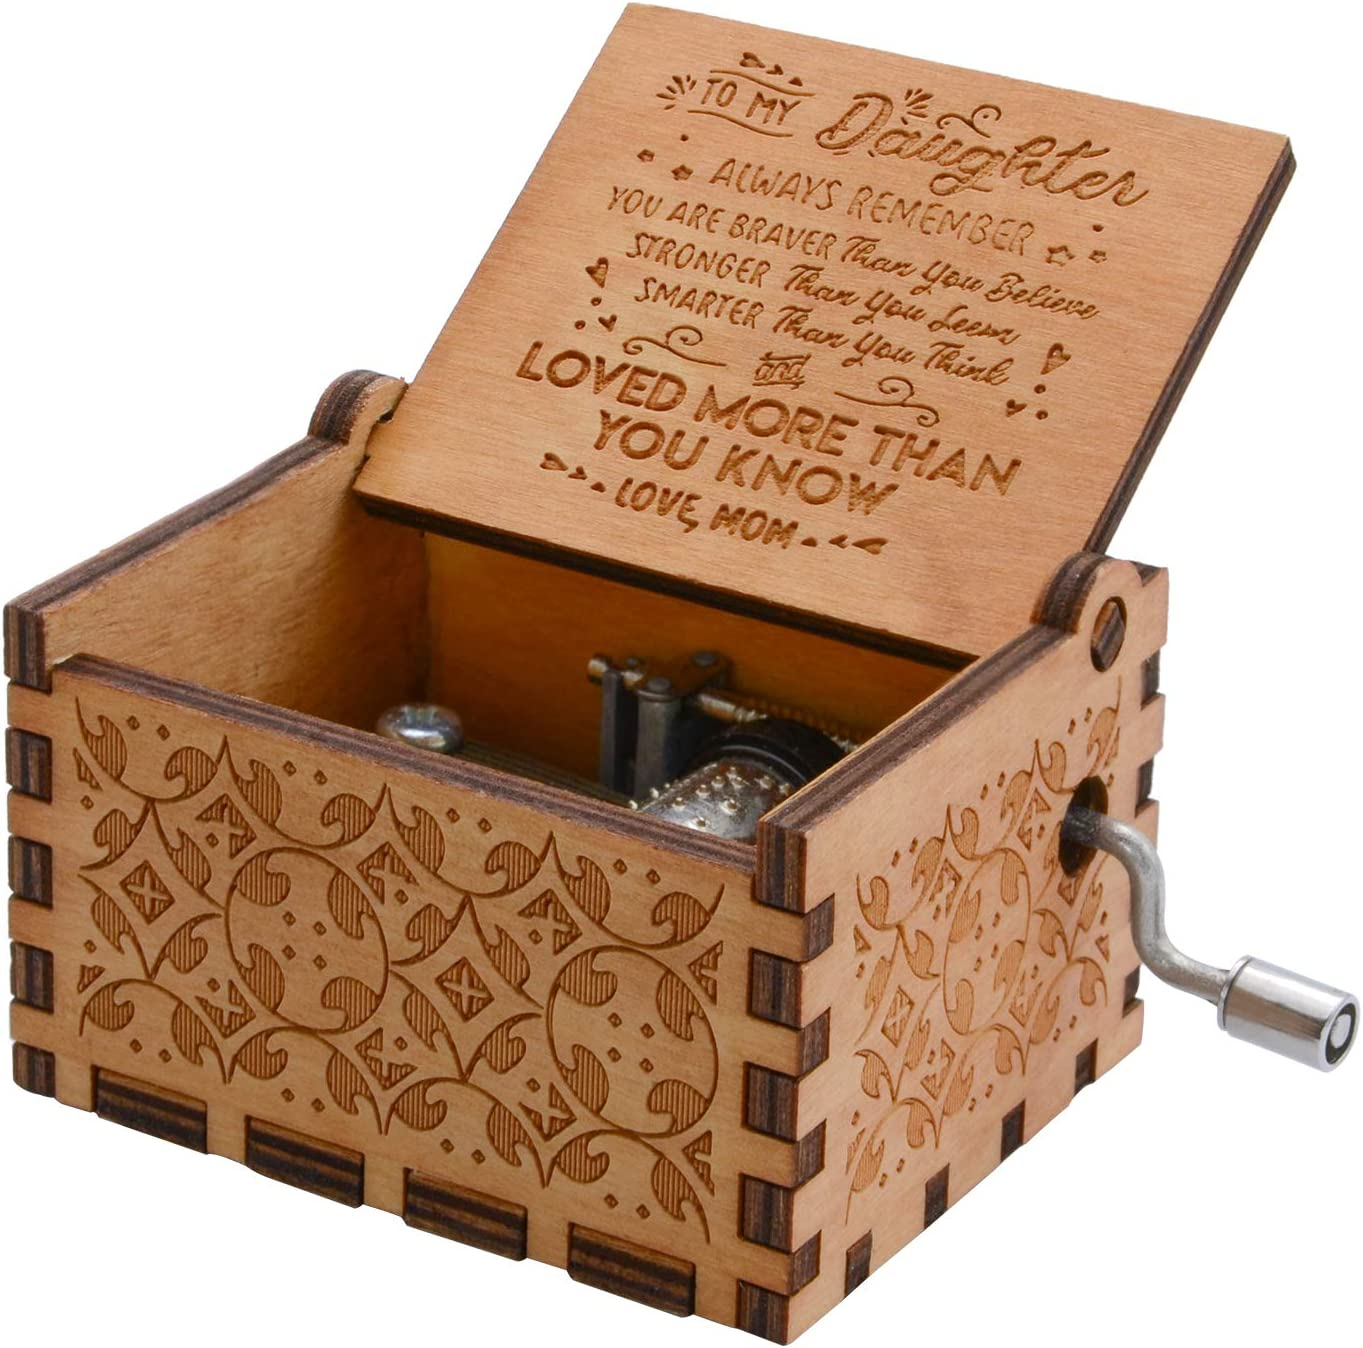 Mom Granddaughter Wood Laser Engraved Vintage Wooden Musical Box Gifts for Wife FerDIM Music Boxes Dad to Daughter Style1 Son Daughter Wedding Anniversary//Birthday//Christmas//Valentines Day